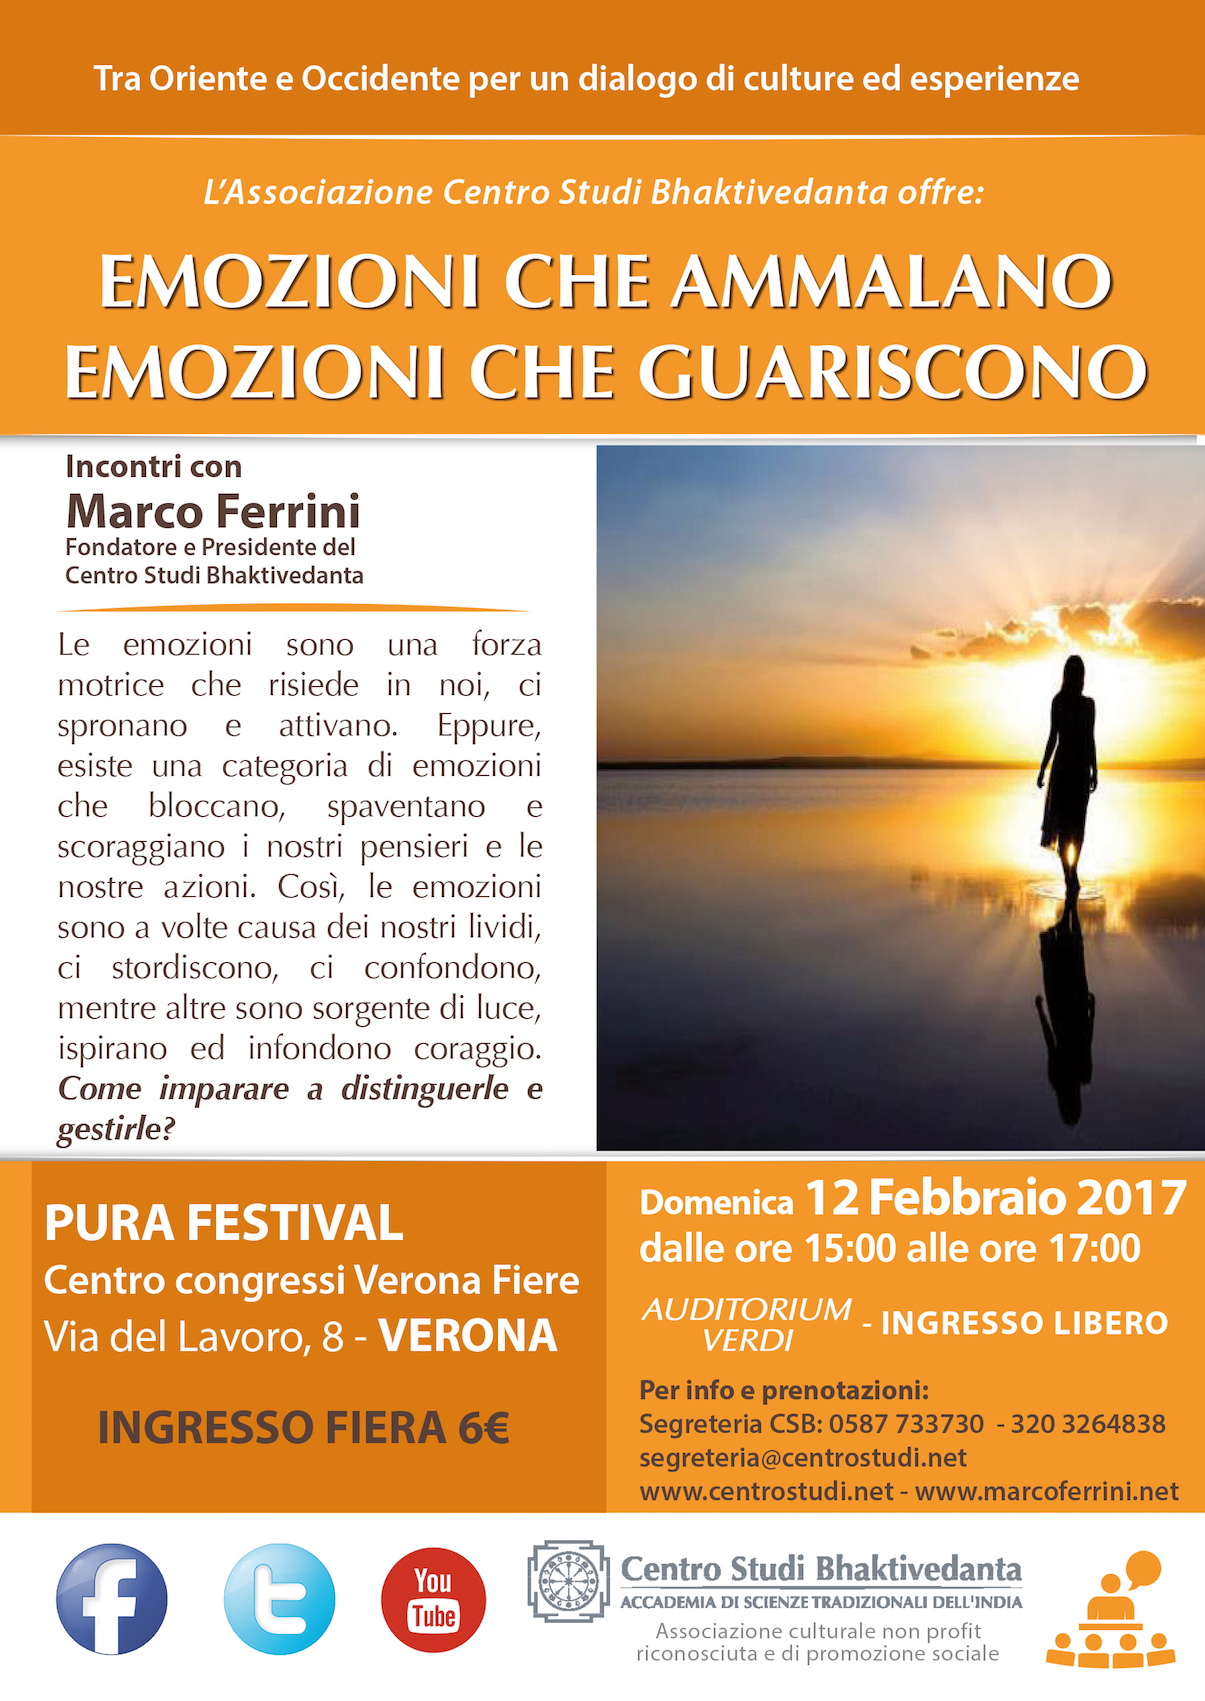 images/blog/calendario/2017FEB12VERONA.jpg